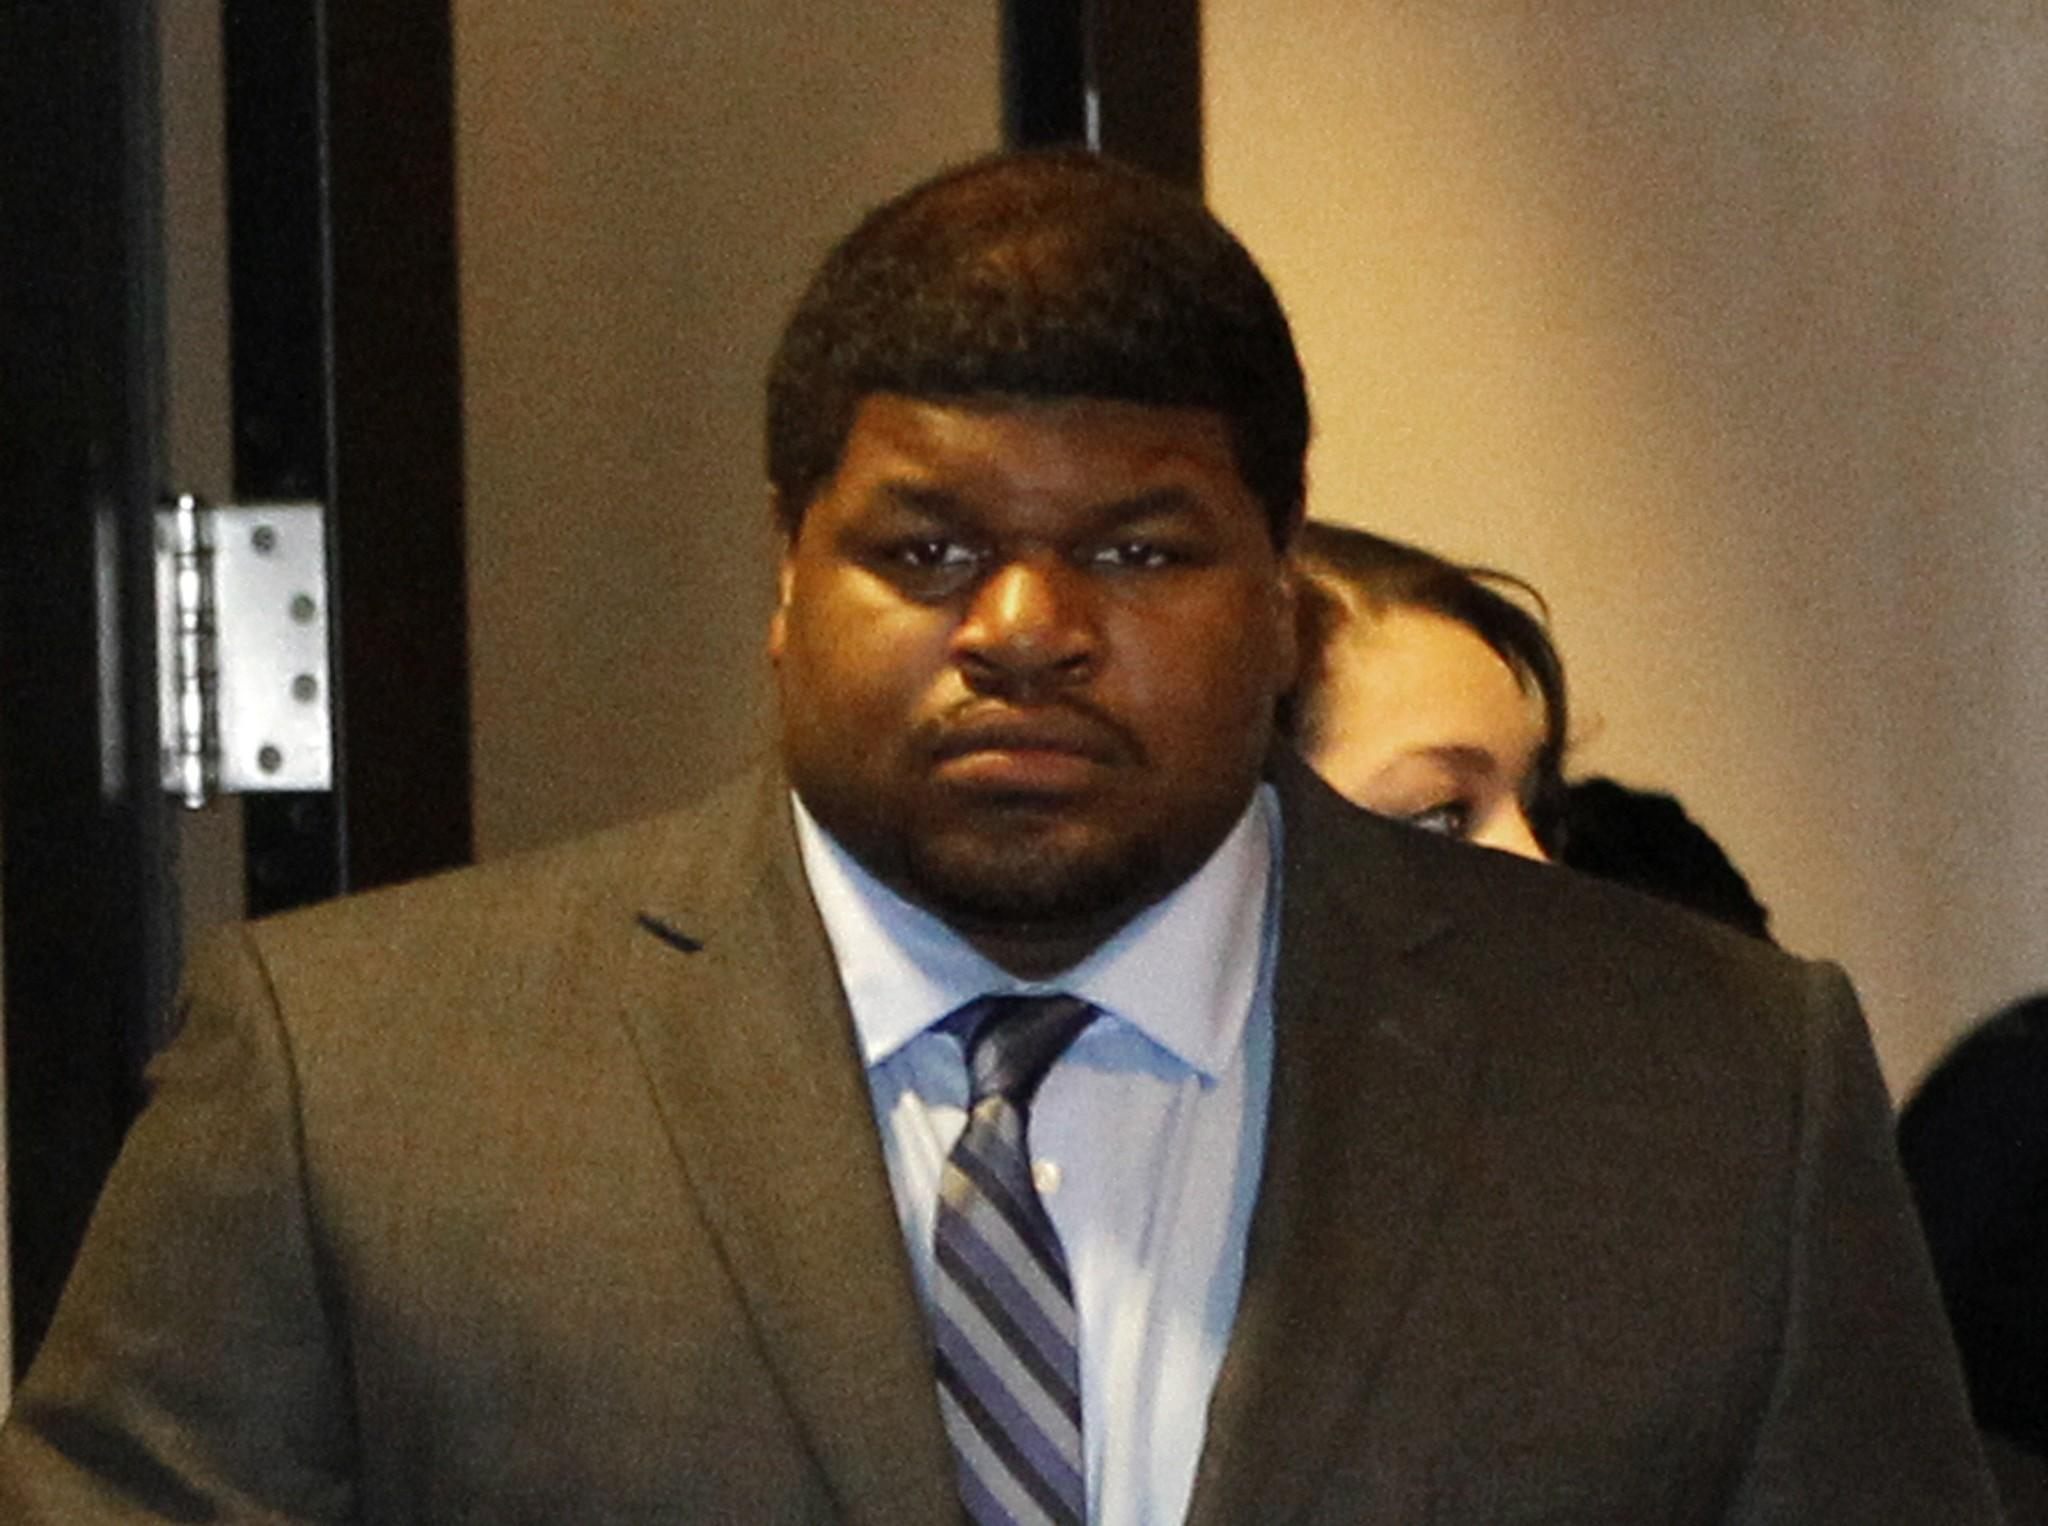 Former Dallas Cowboys and Illinois player Josh Brent enters the courtroom in Dallas last week.